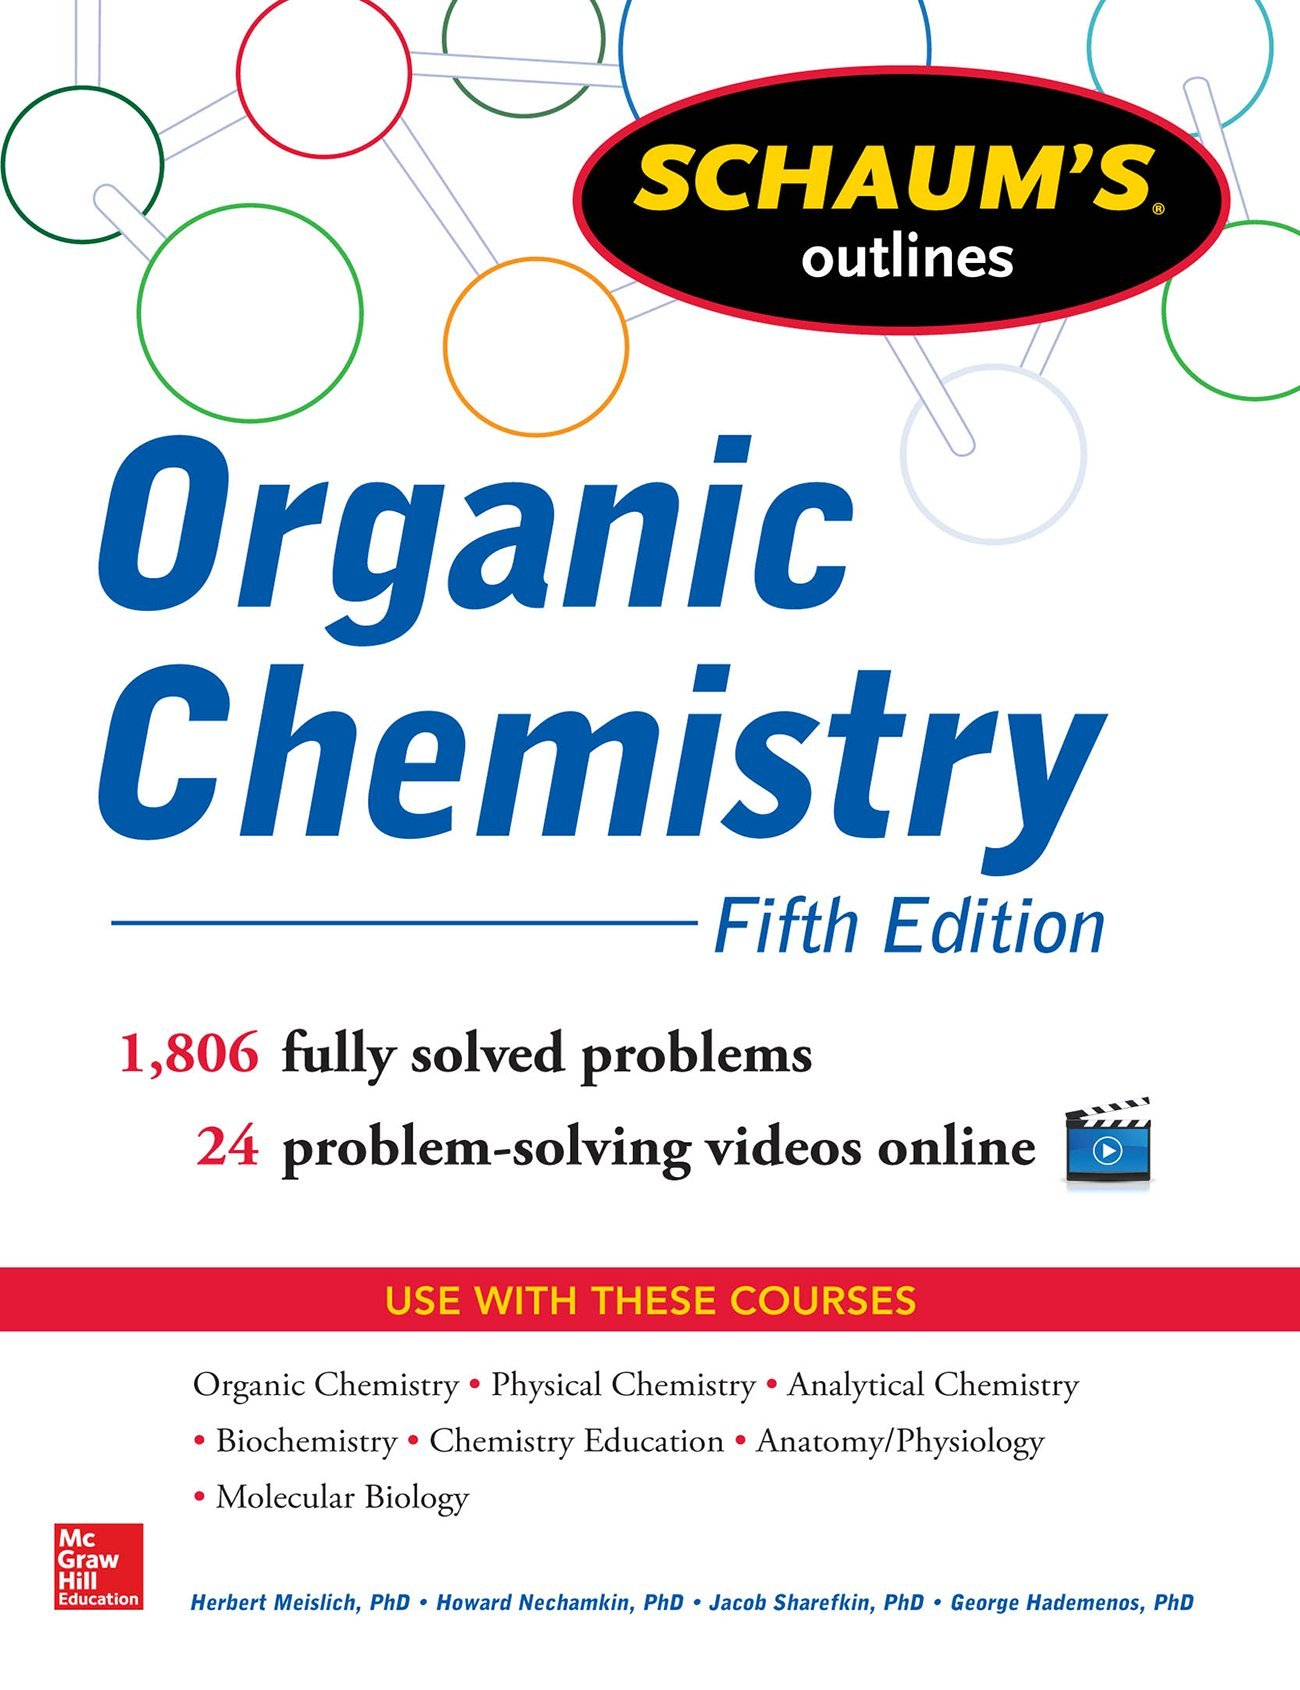 schaum s outline of organic chemistry solved problems  schaum s outline of organic chemistry 1 806 solved problems 24 videos herbert meislich howard nechamkin jacob sharefkin george j hademenos